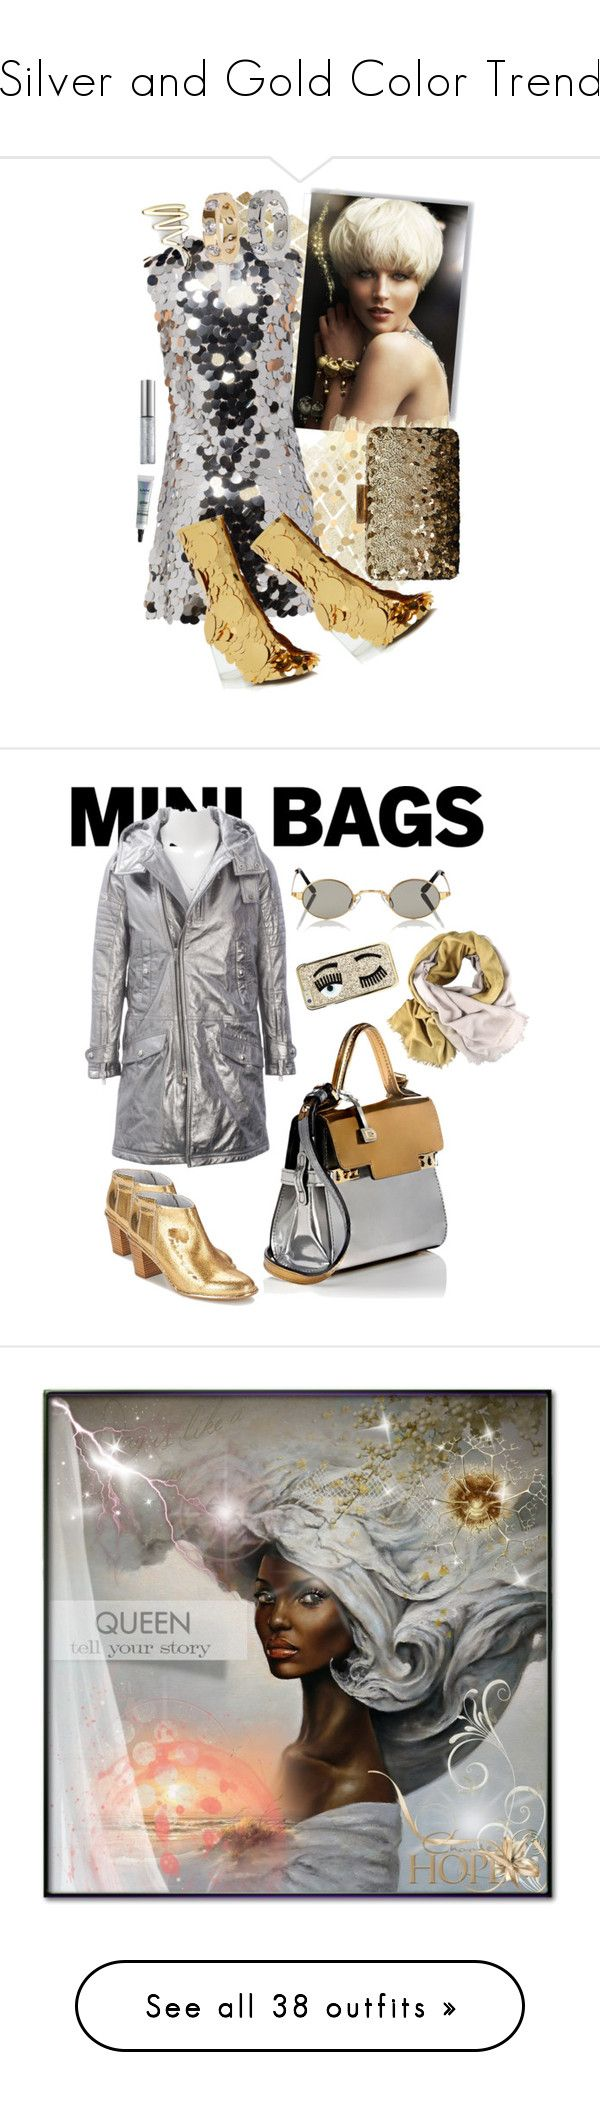 """""""Silver and Gold Color Trend"""" by yours-styling-best-friend ❤ liked on Polyvore featuring Miu Miu, NEXTE Jewelry, Tiffany & Co., Maison Margiela, Urban Decay, NYX, Oscar de la Renta, Diesel Black Gold, Miista and Roberi & Fraud"""